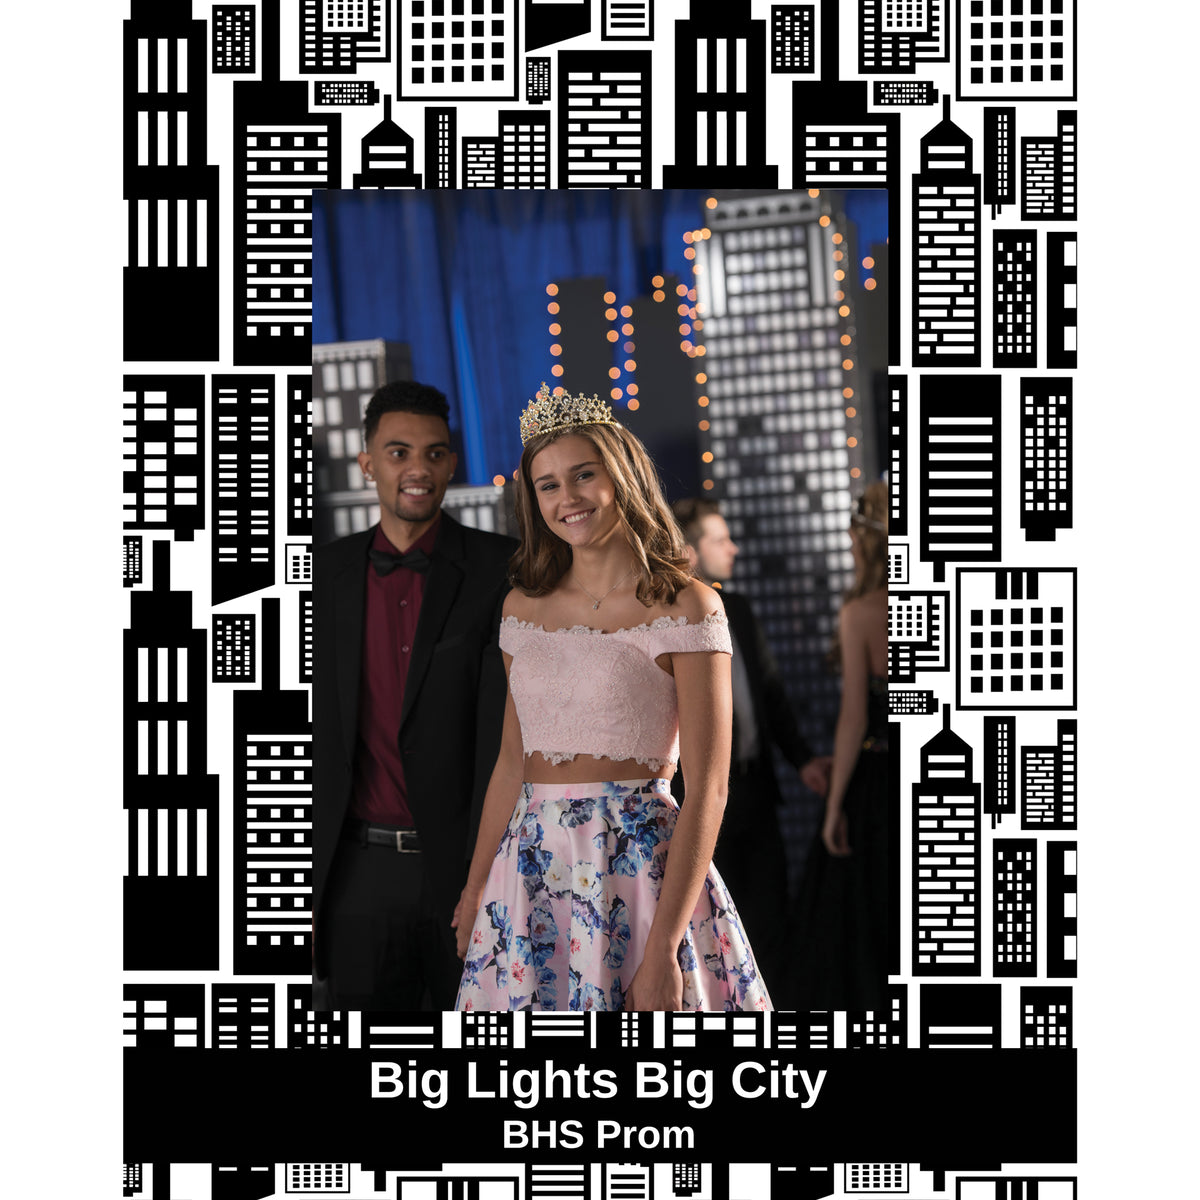 Big City Lights Personalized Glass Frame